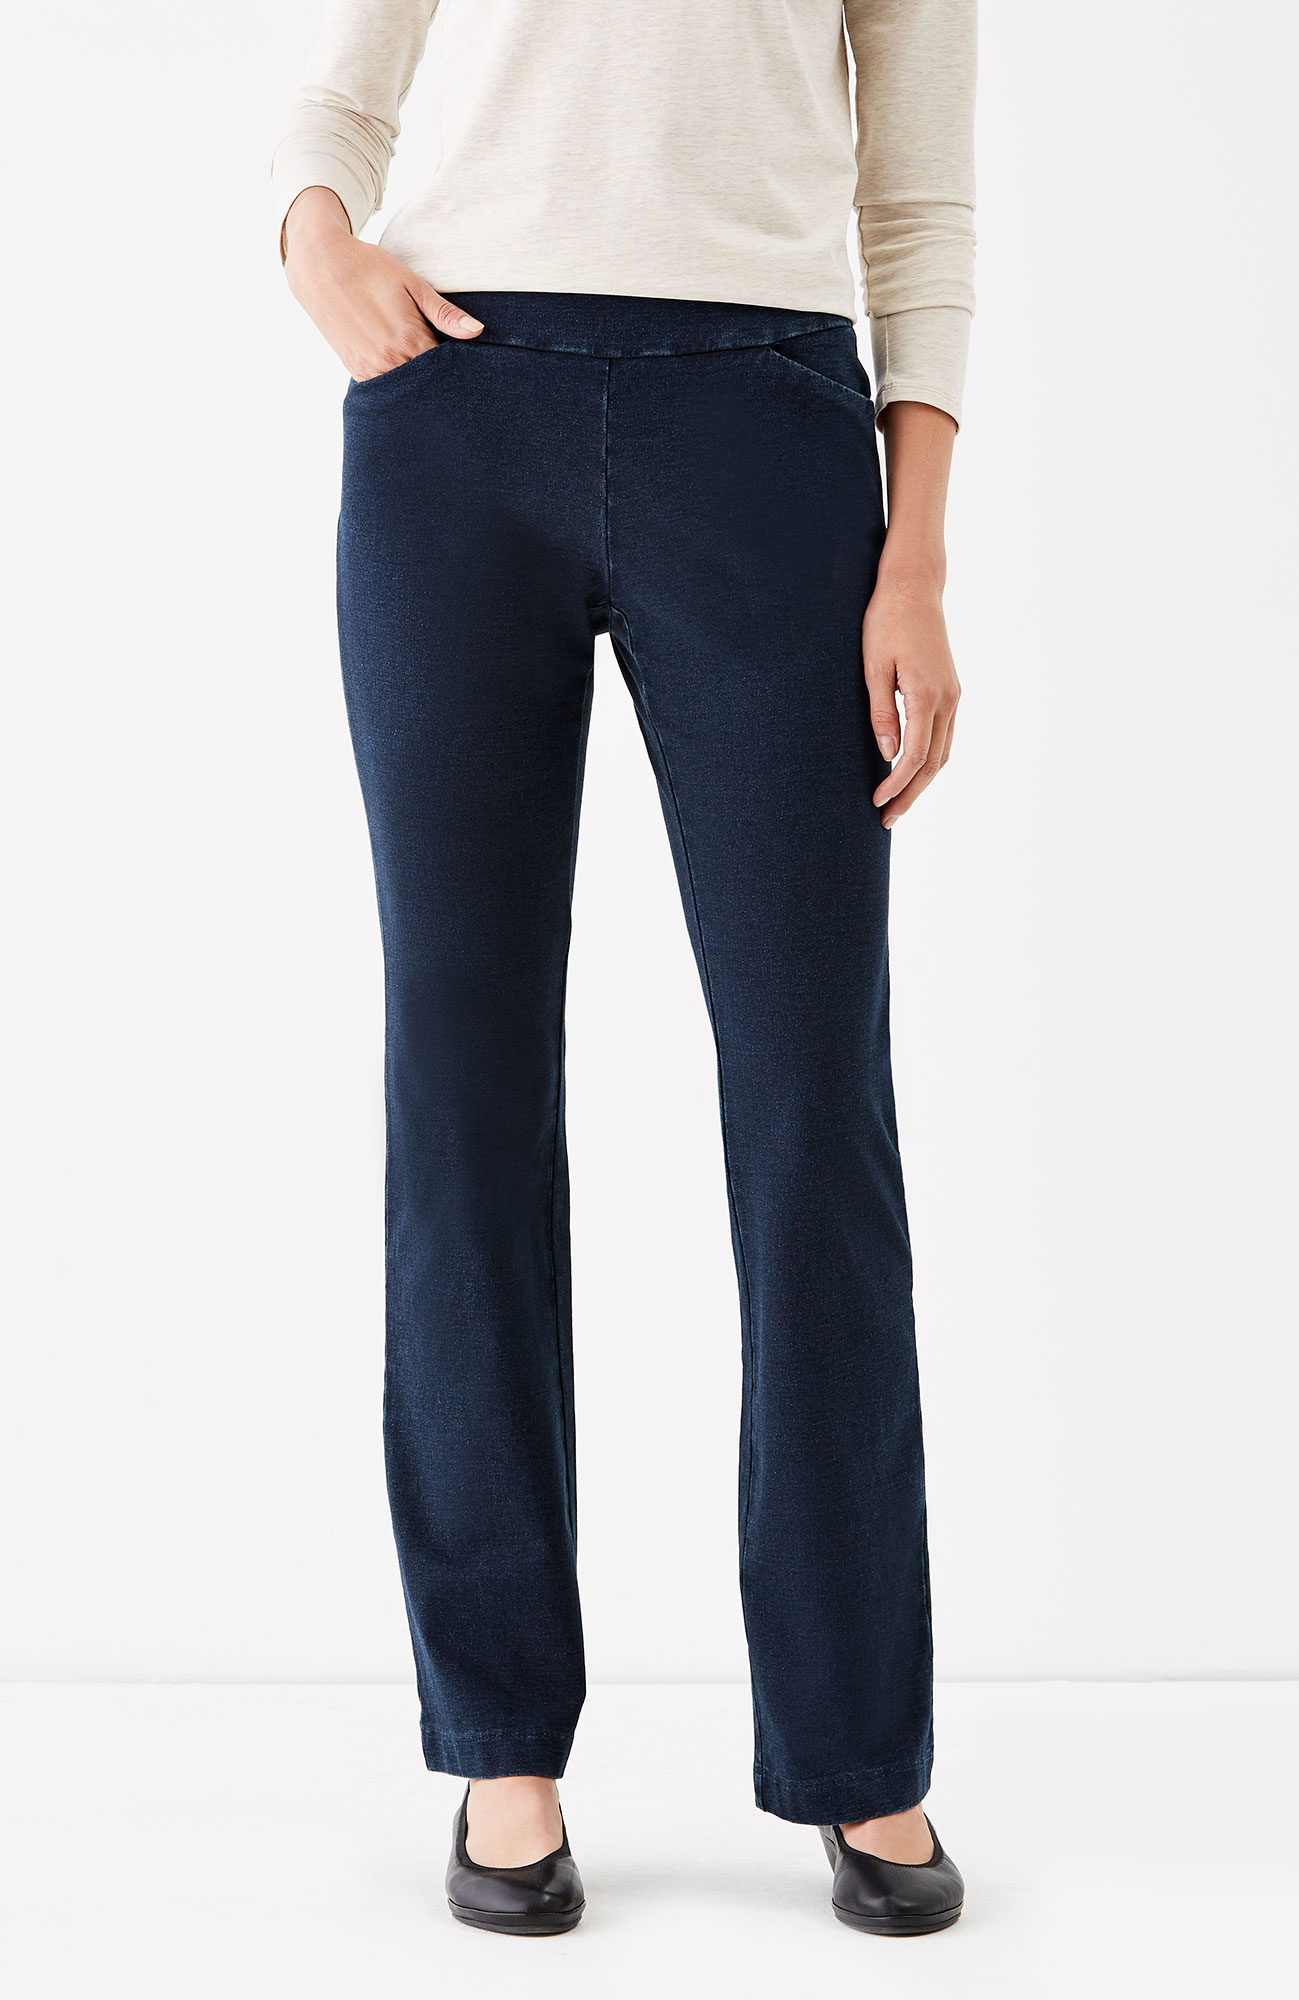 Pure Jill indigo knit everyday pants